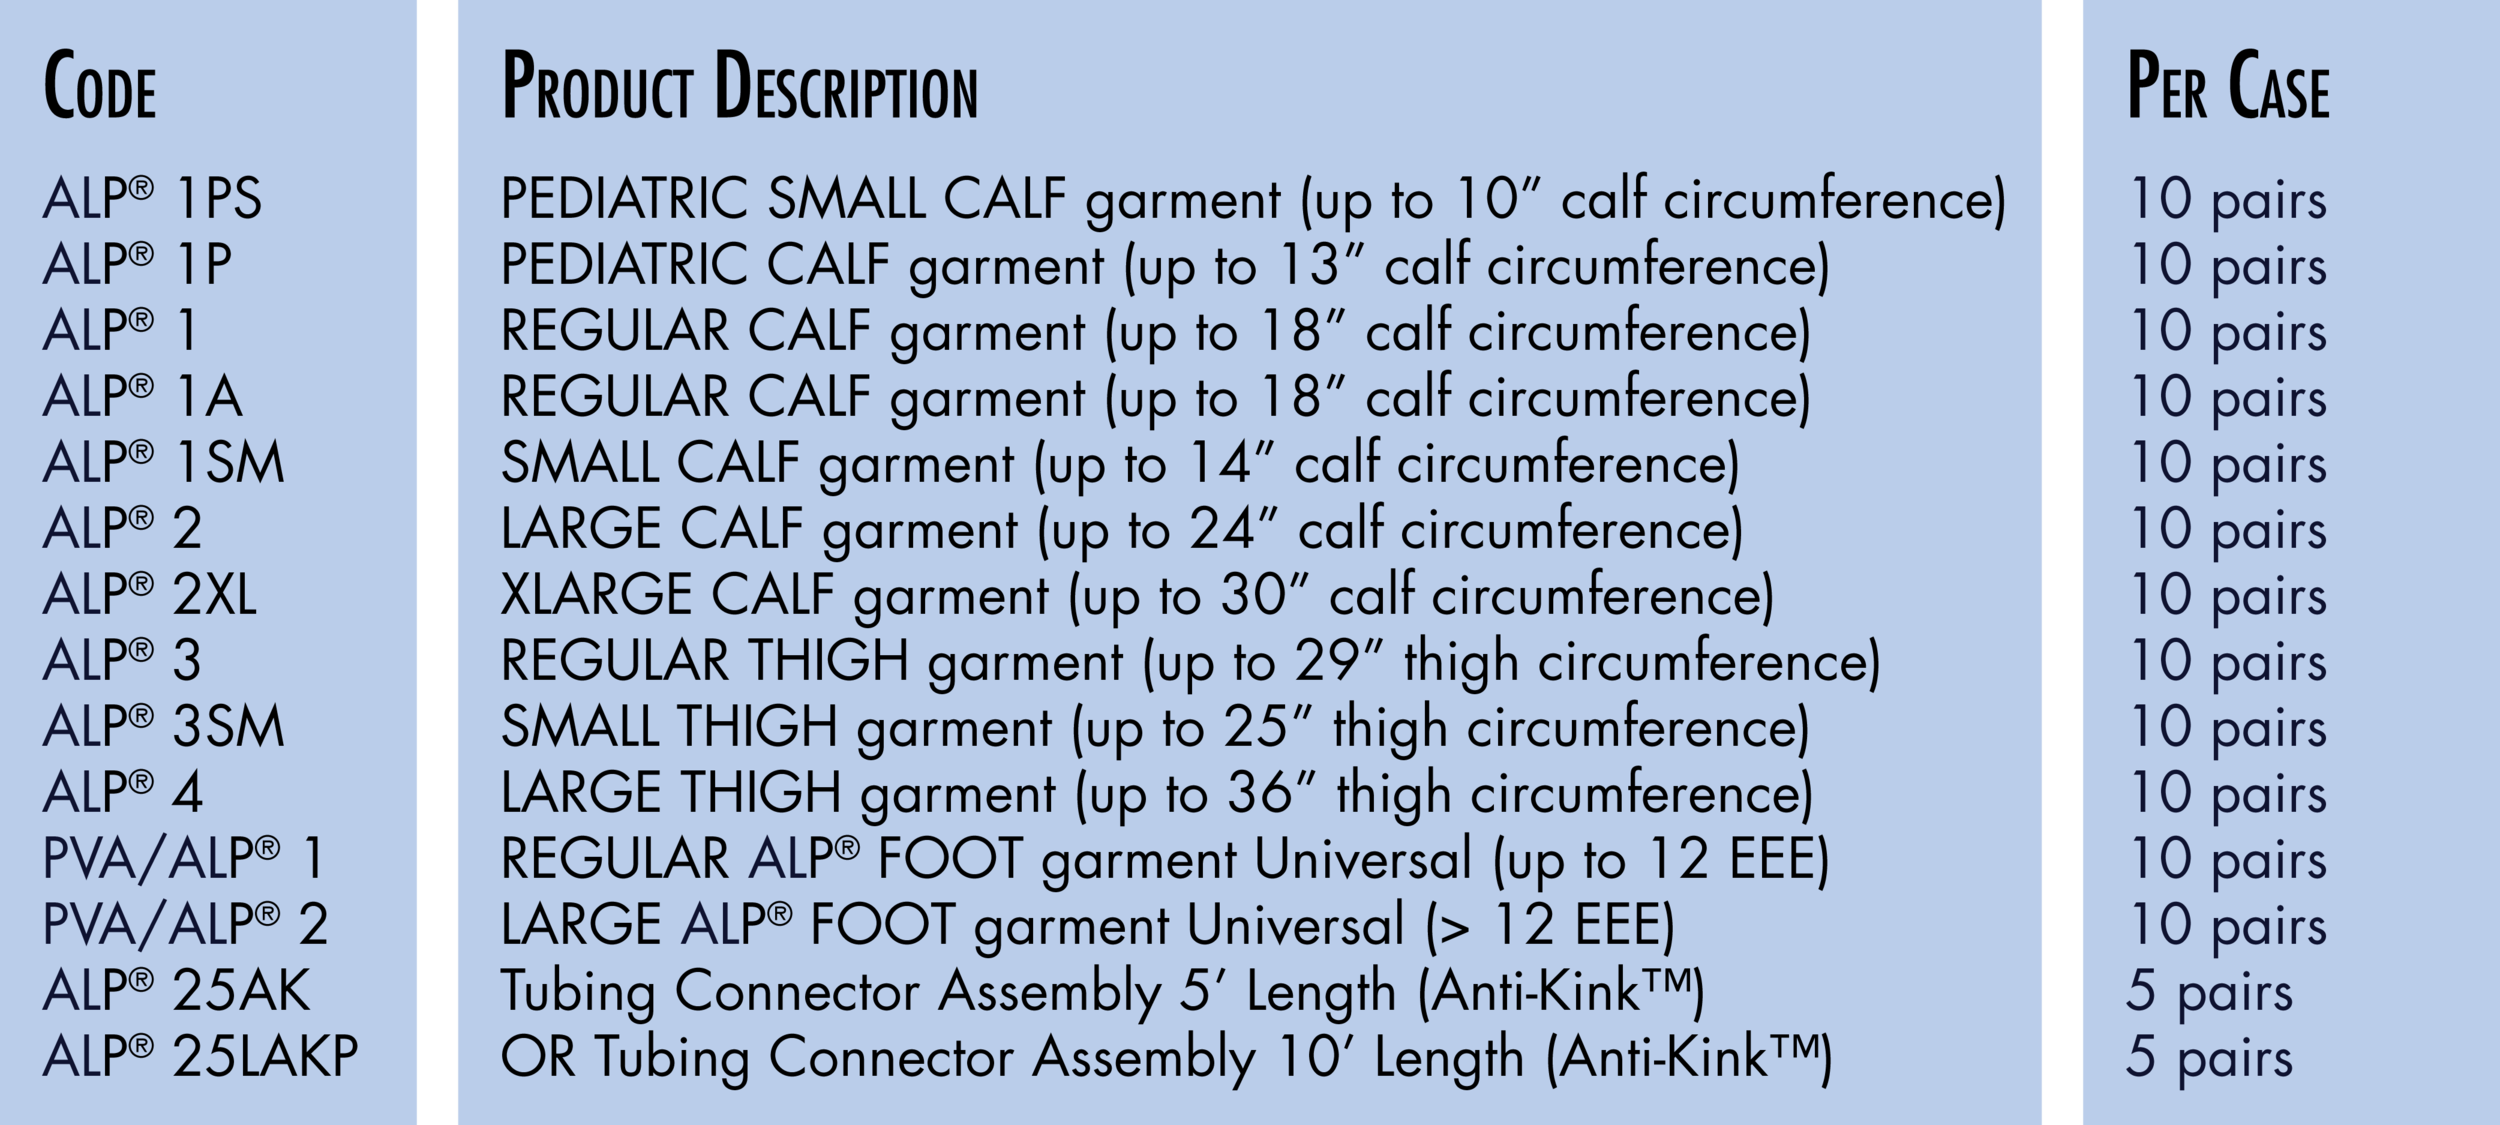 Garment_Product_Sheet.png